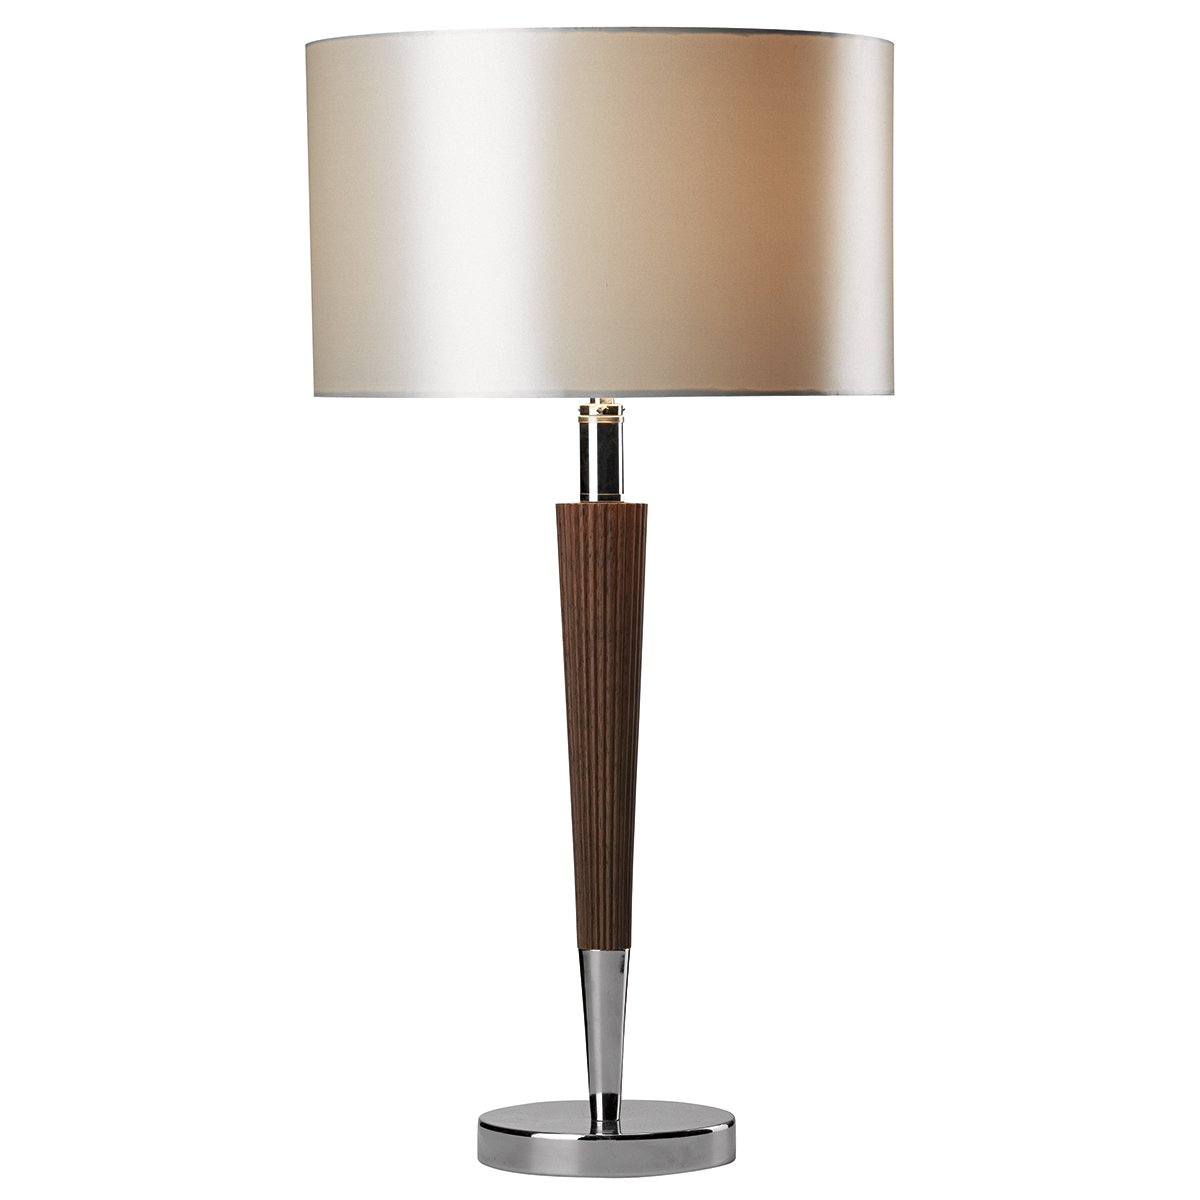 dar viking table lamp polished chrome dark wood complete with cream linen shade at barnitts. Black Bedroom Furniture Sets. Home Design Ideas